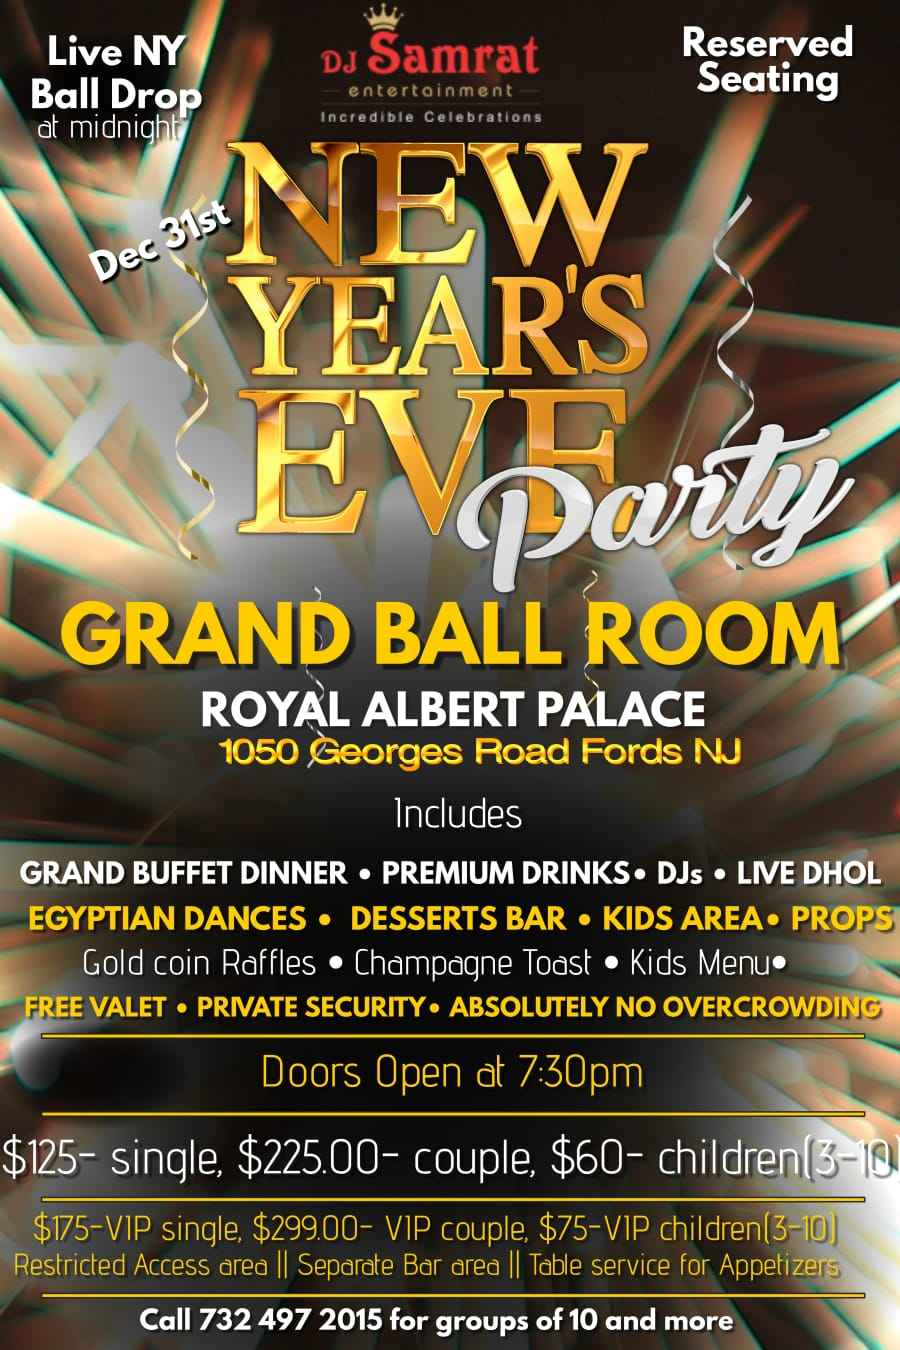 NEW YEAR'S EVE PARTY @ Royal Albert Palace (Grand Ball Room)